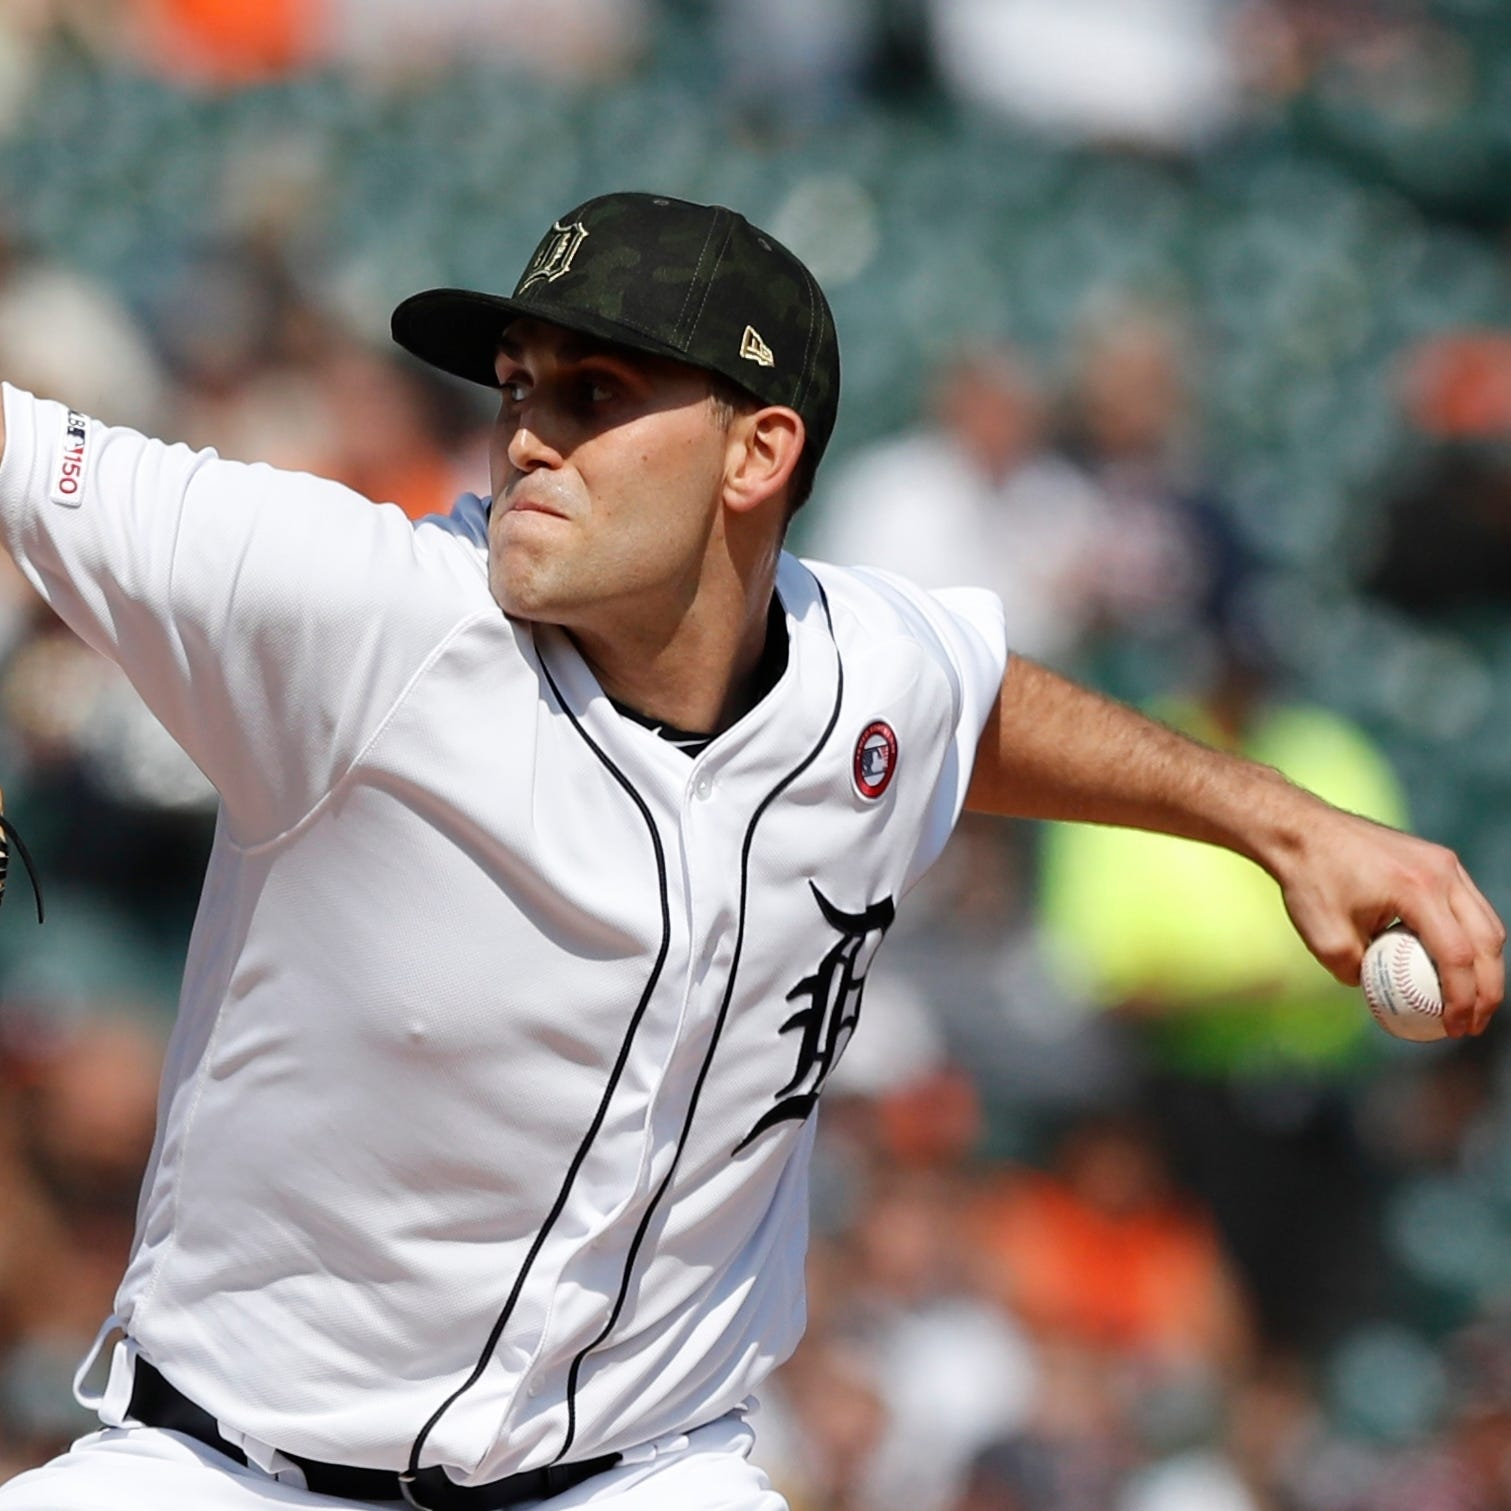 Detroit Tigers podcast: Chat with ex-pitcher Steve Sparks; minor league check in